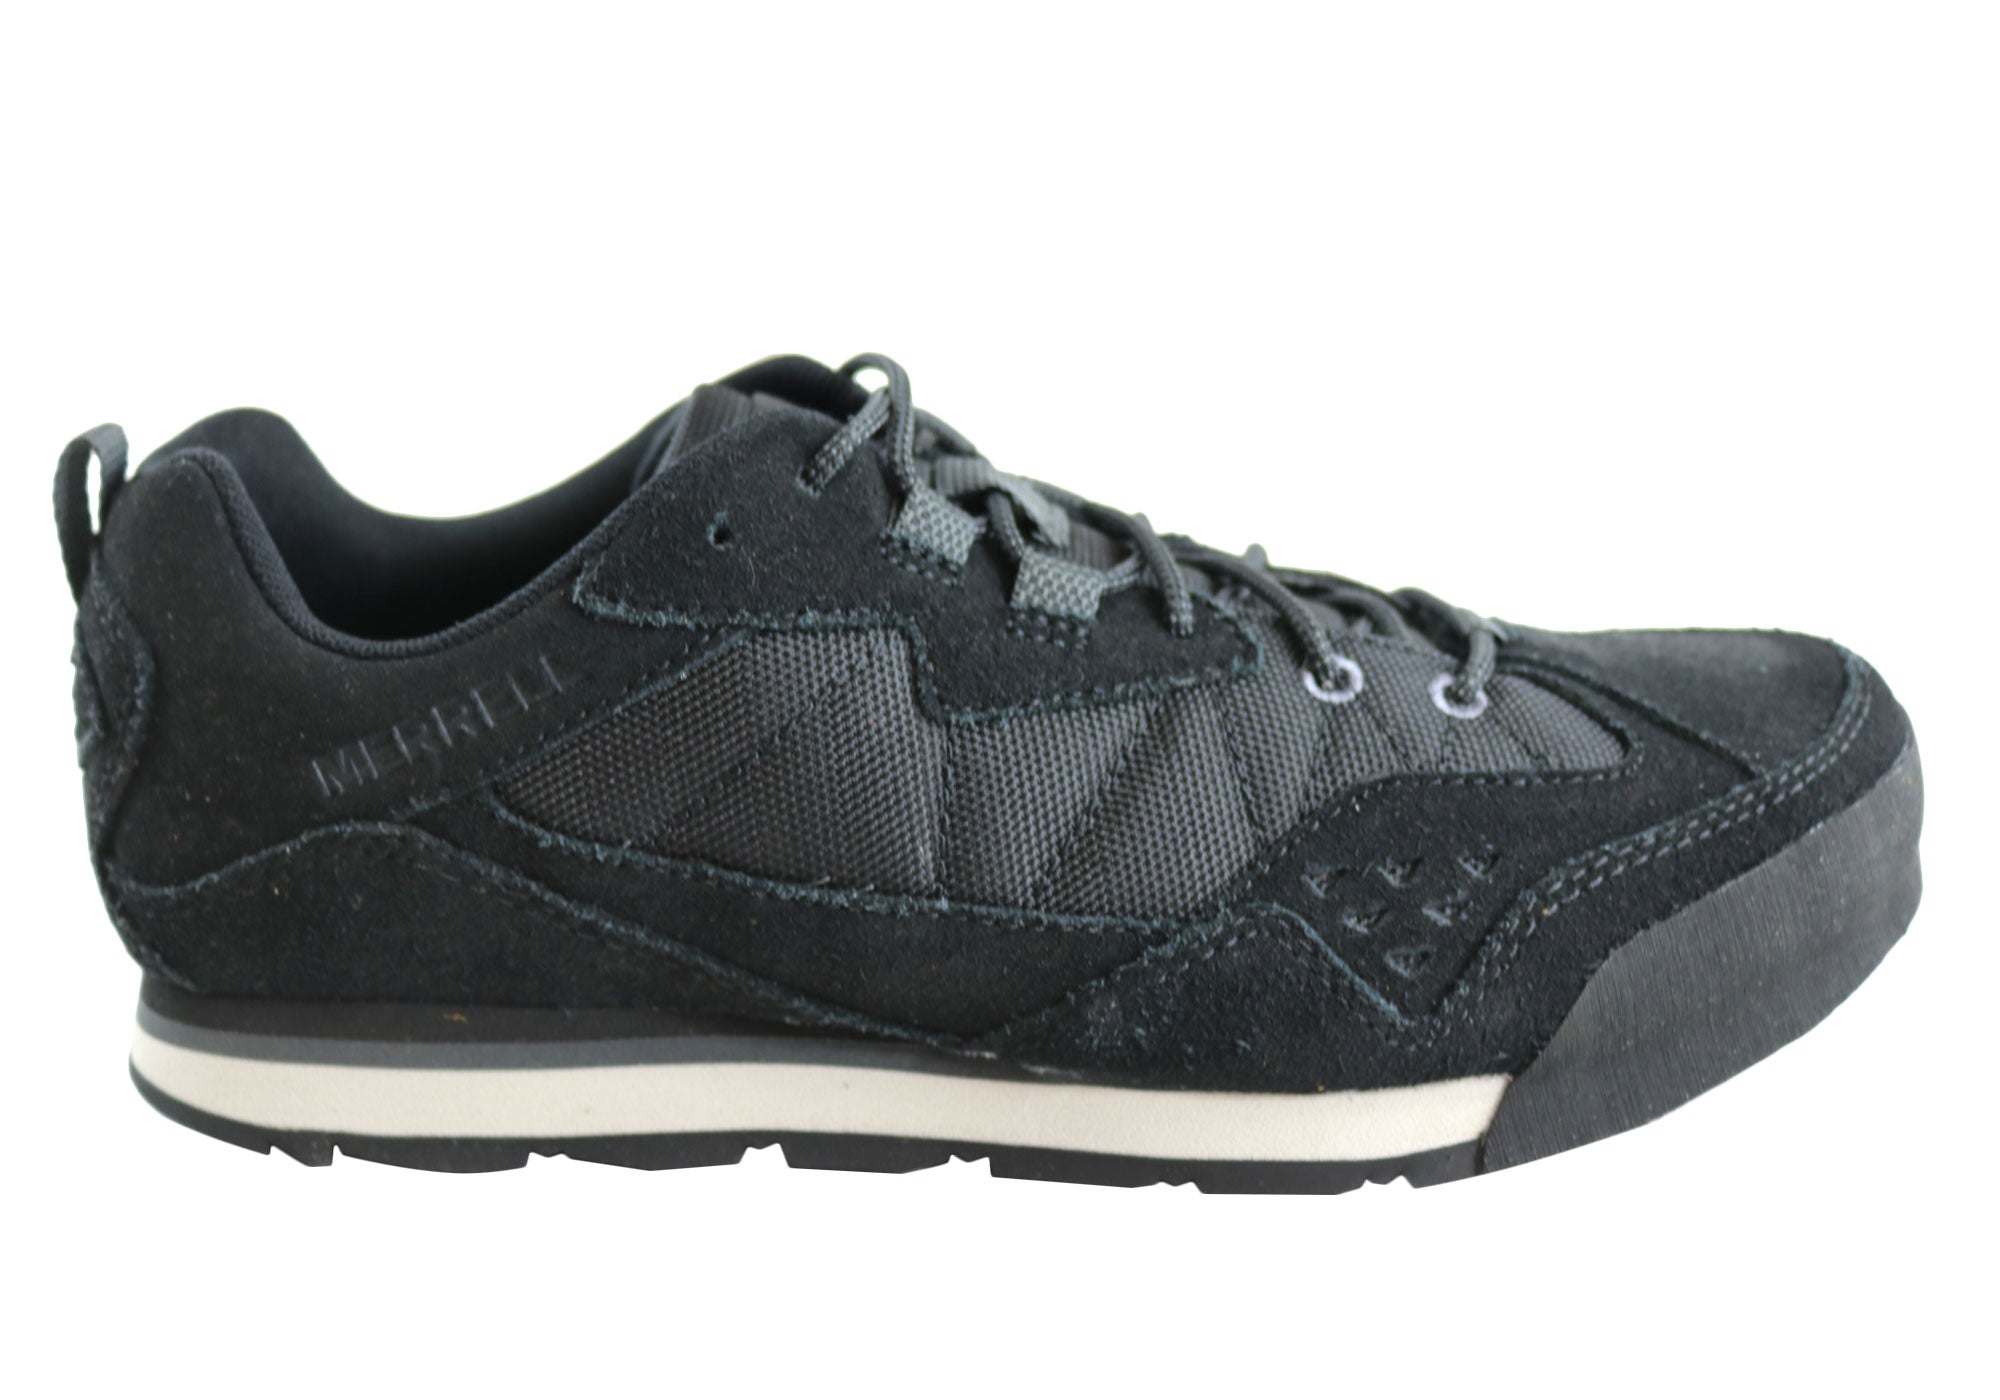 8a2024ccc8 Merrell Burnt Rock Tura Rugged Casual Mens Comfortable Lace Up Shoes ...